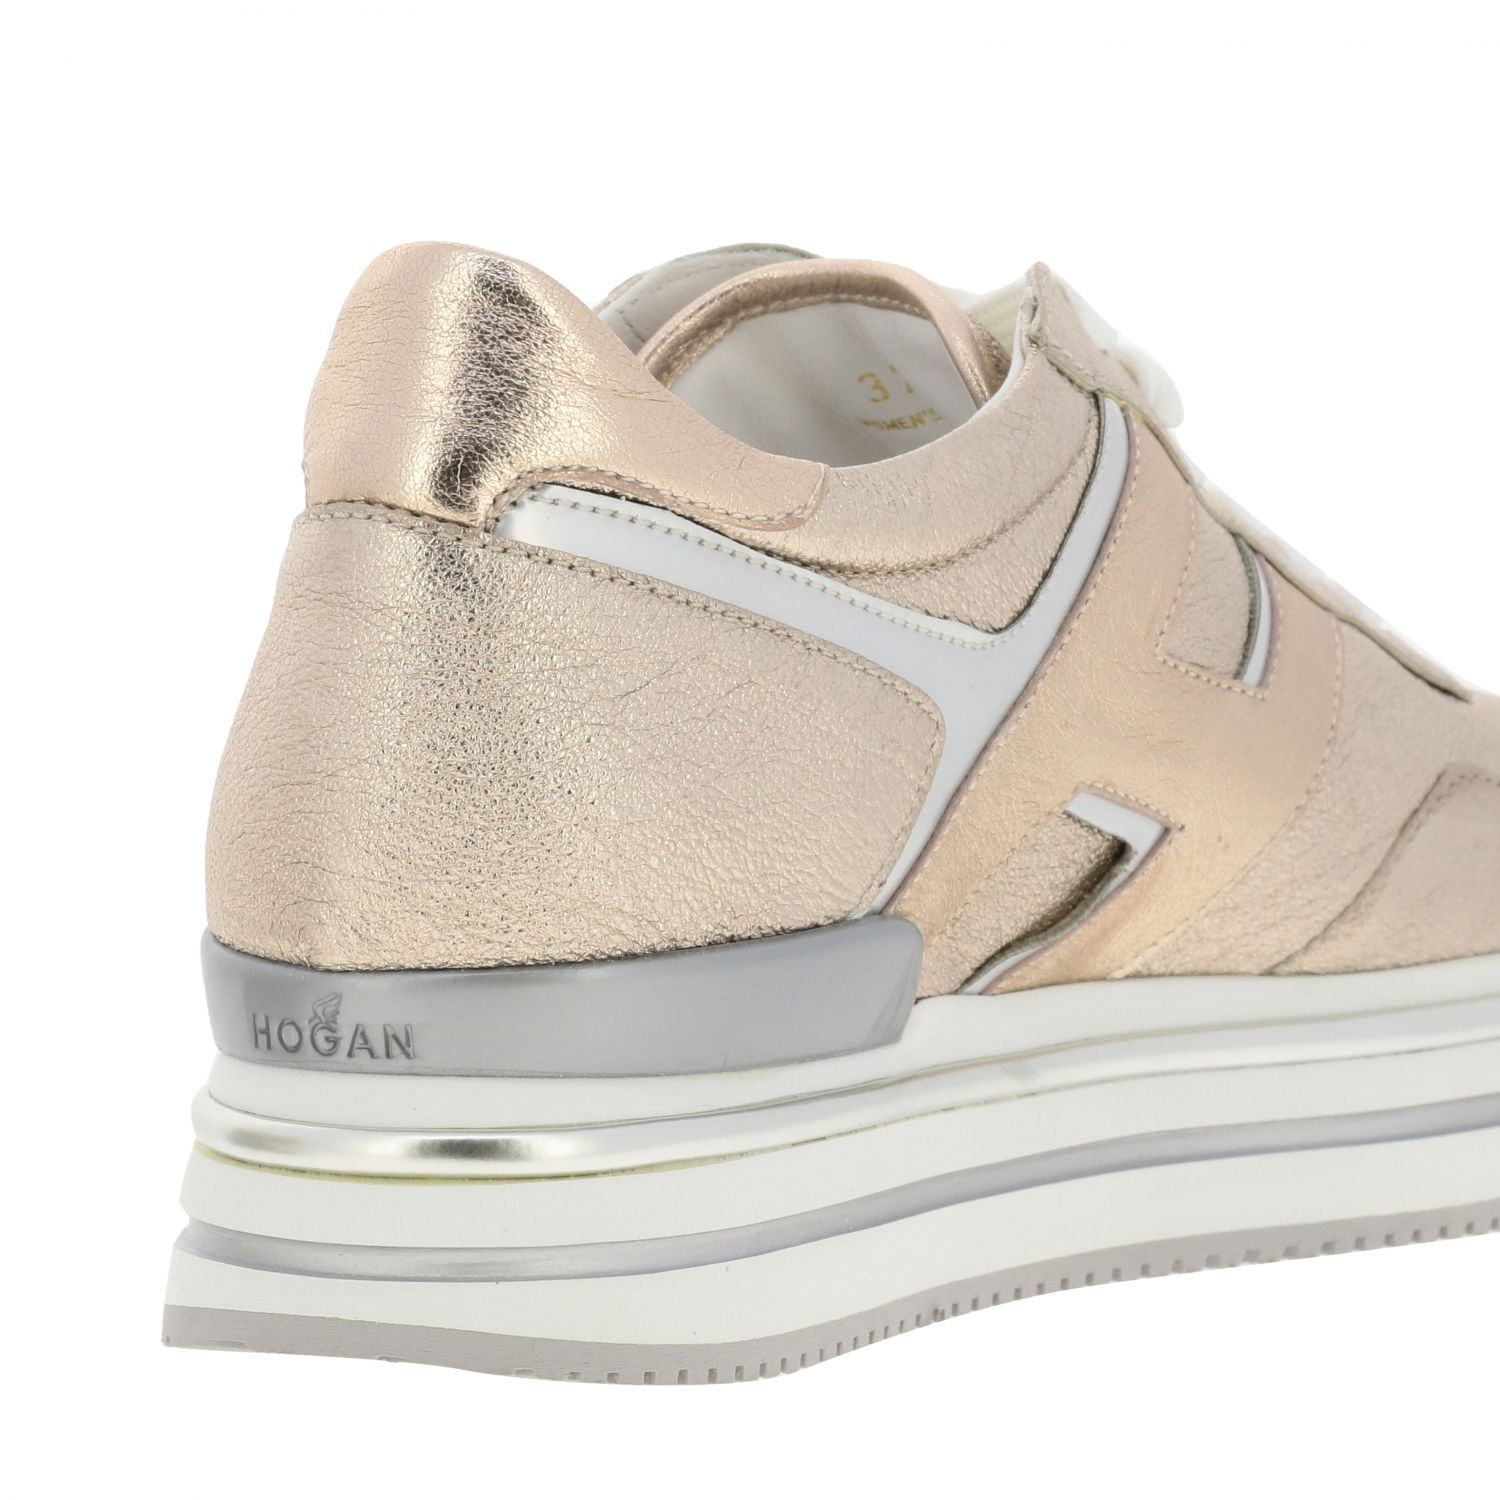 Hogan sneakers in laminated and mirrored leather with sole 222 pink 5